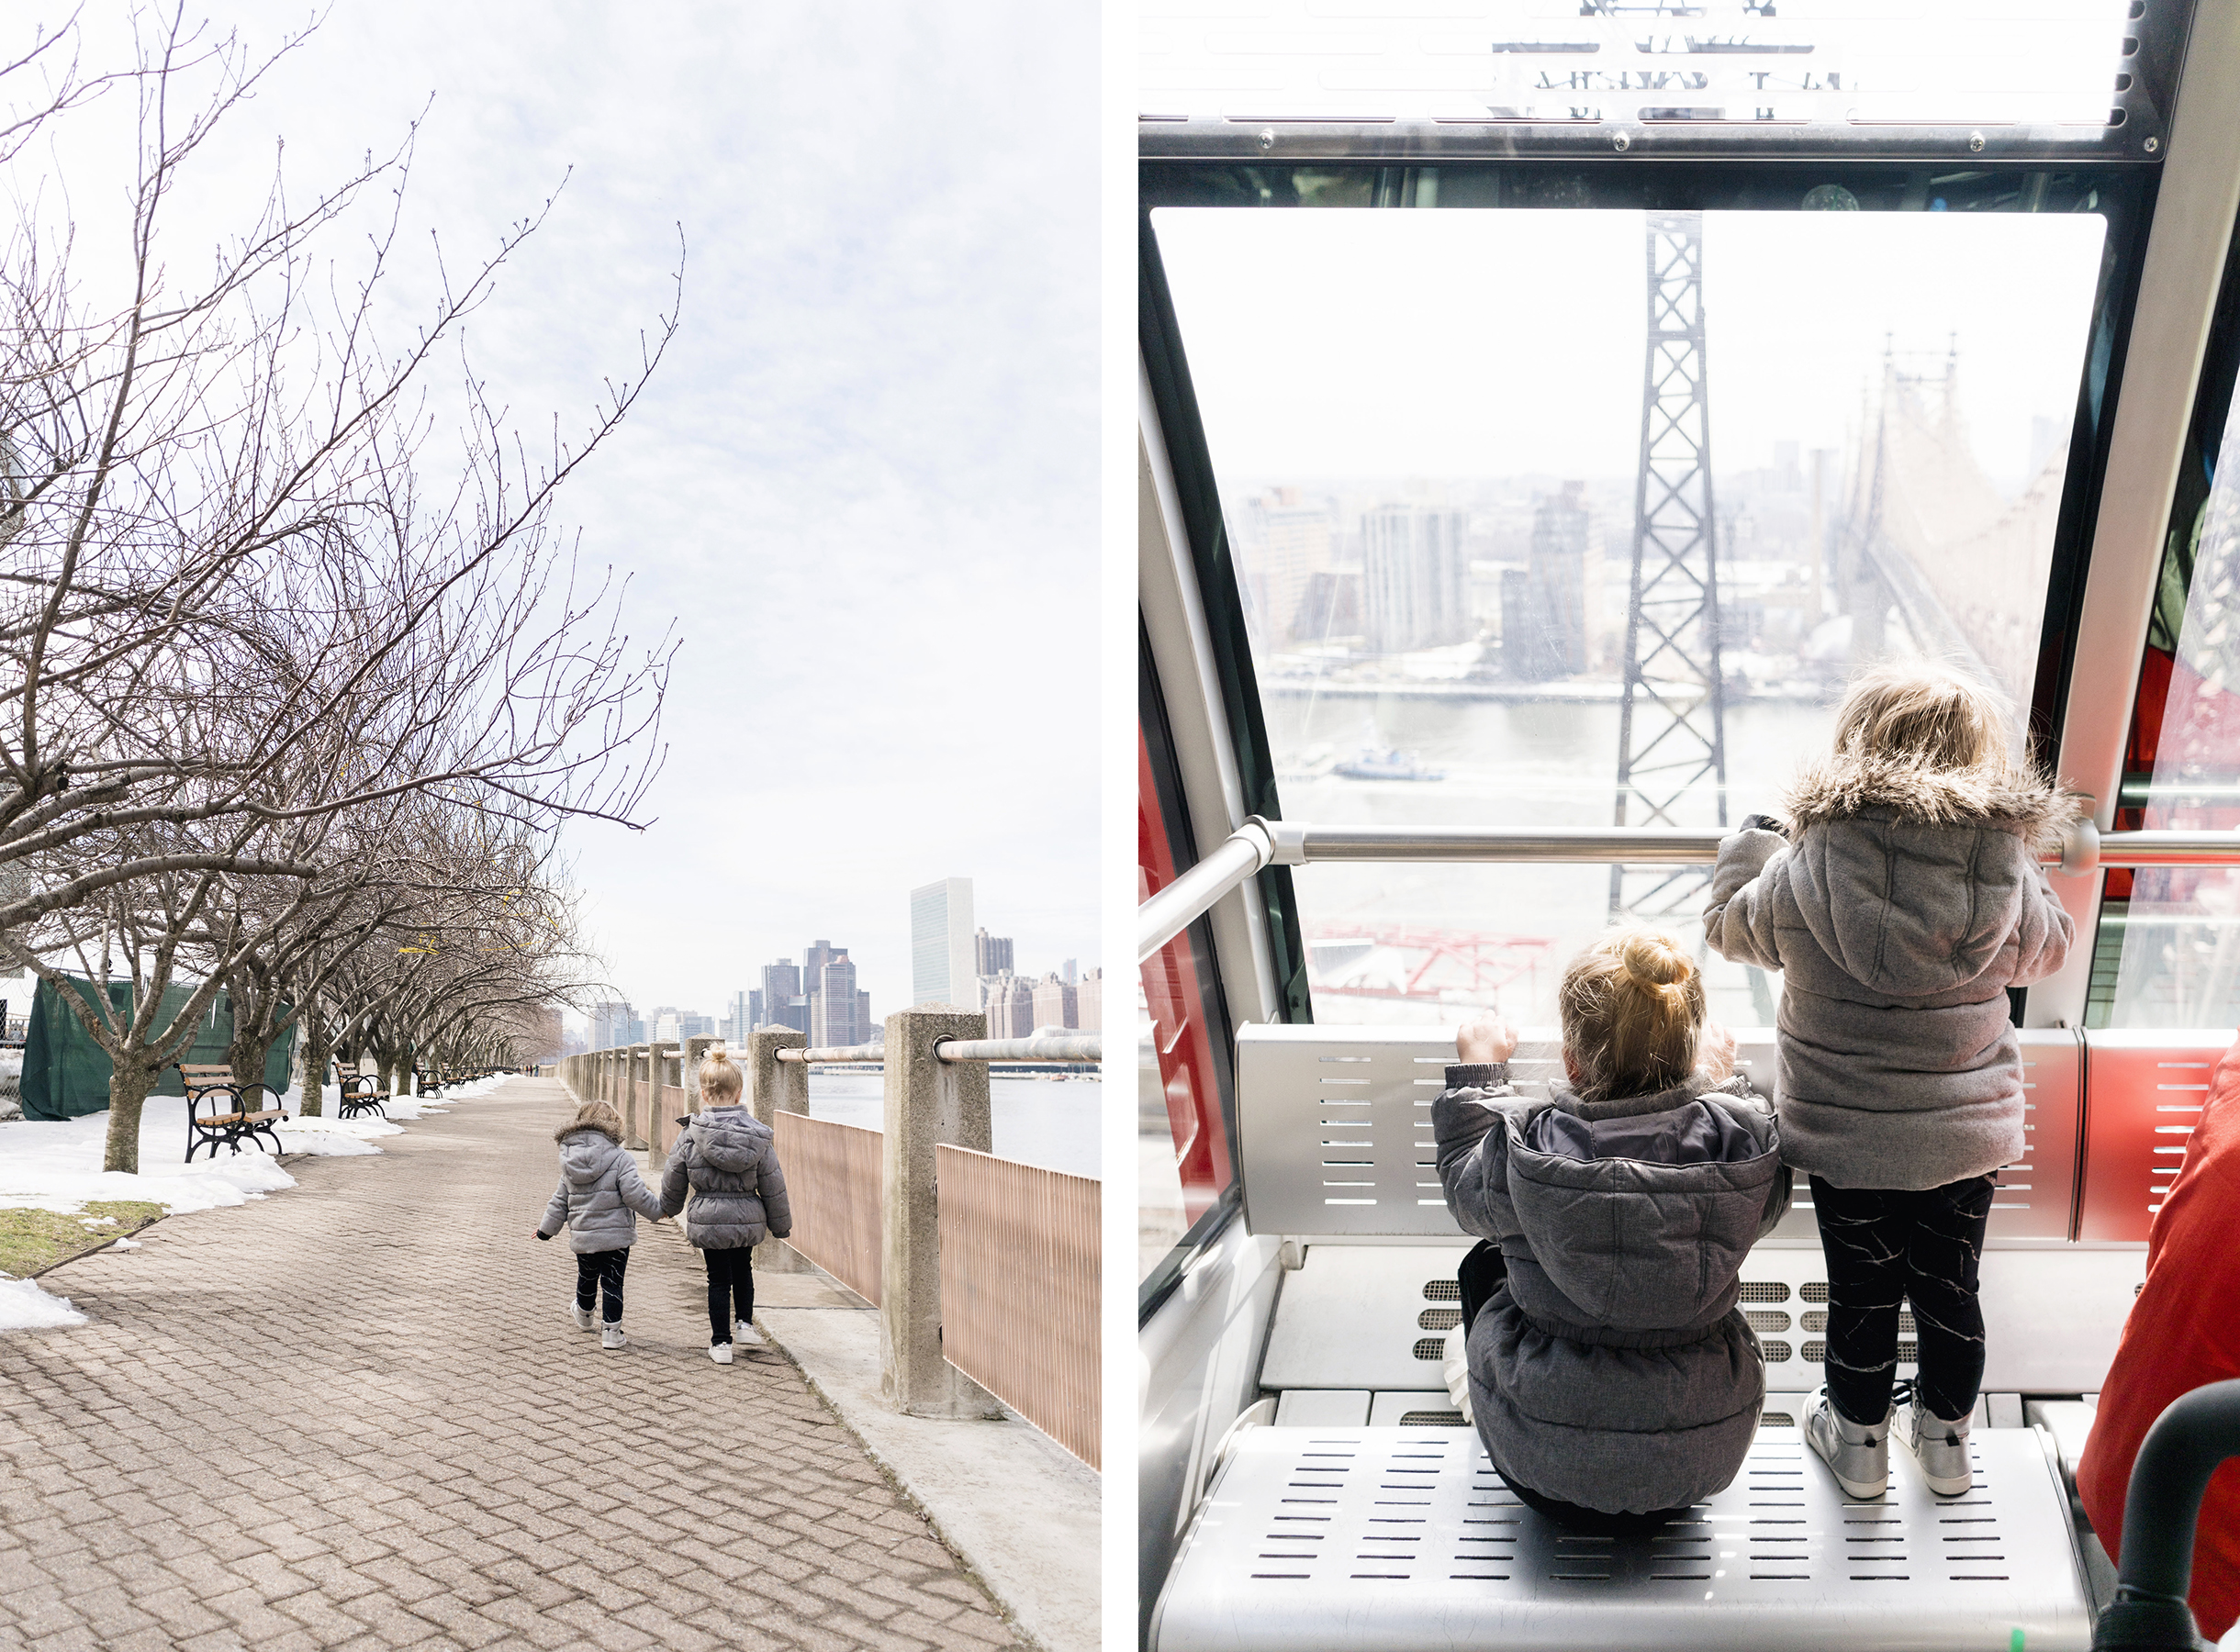 Roosevelt Island - Top 10 things to do in NYC with young kids | New York City travel guide